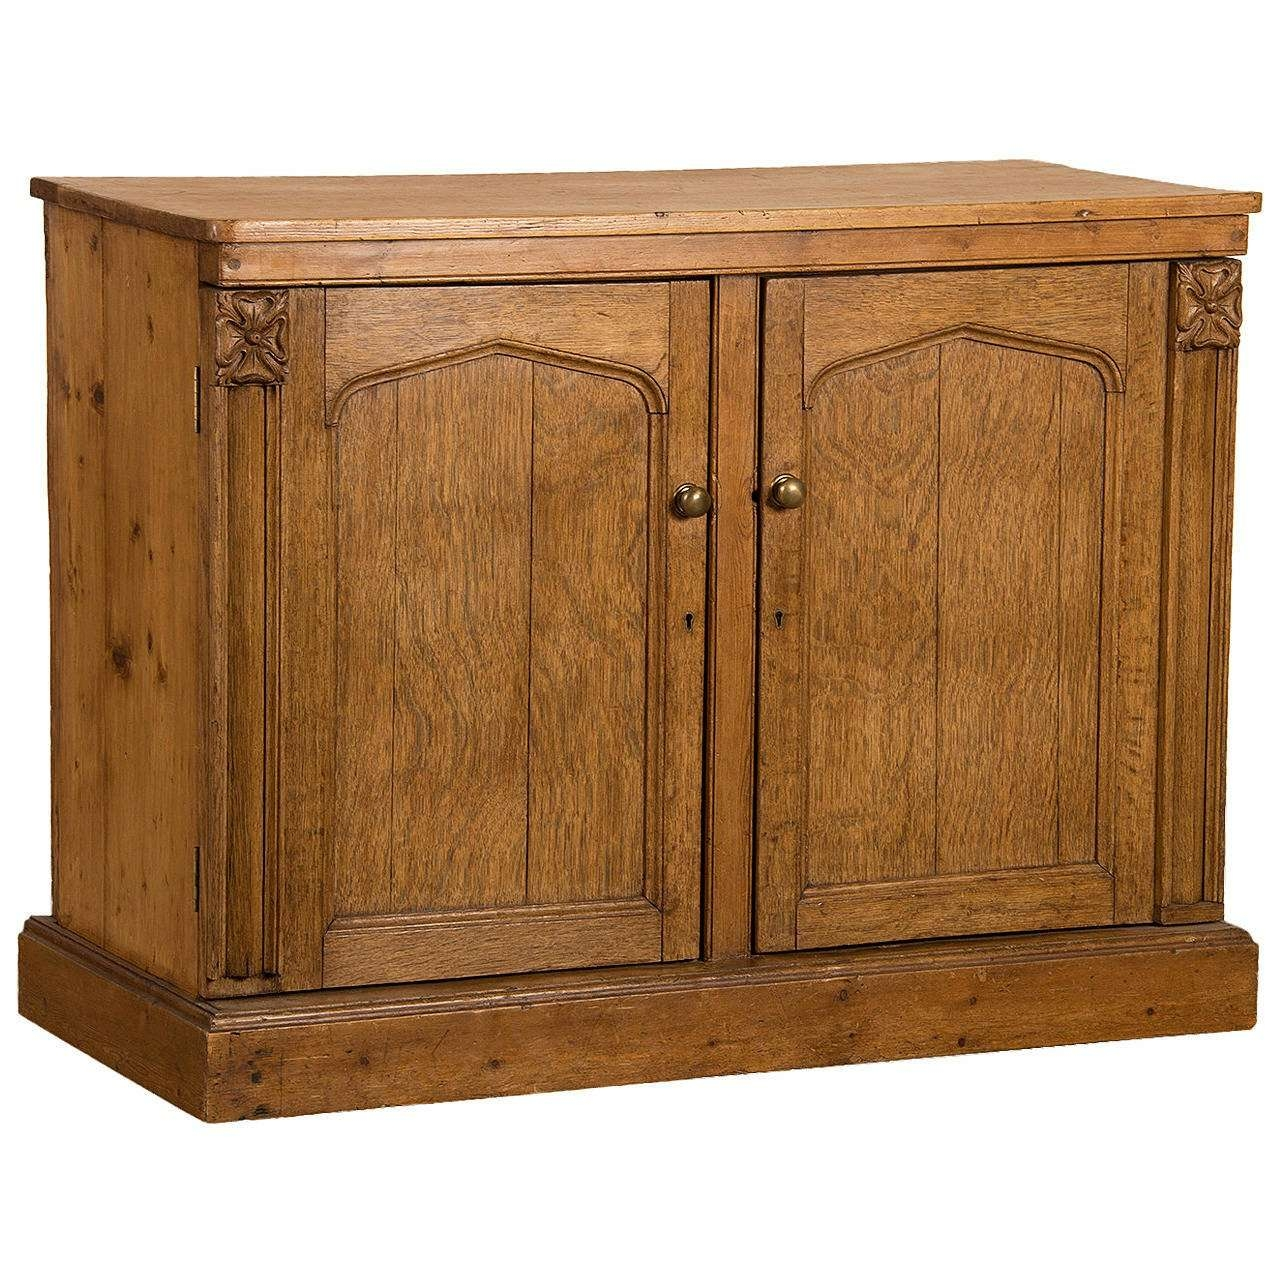 Antique Irish Gothic Revival Oak And Pine Buffet Cabinet Circa With Regard To Jacobean Sideboards Buffets (View 5 of 20)